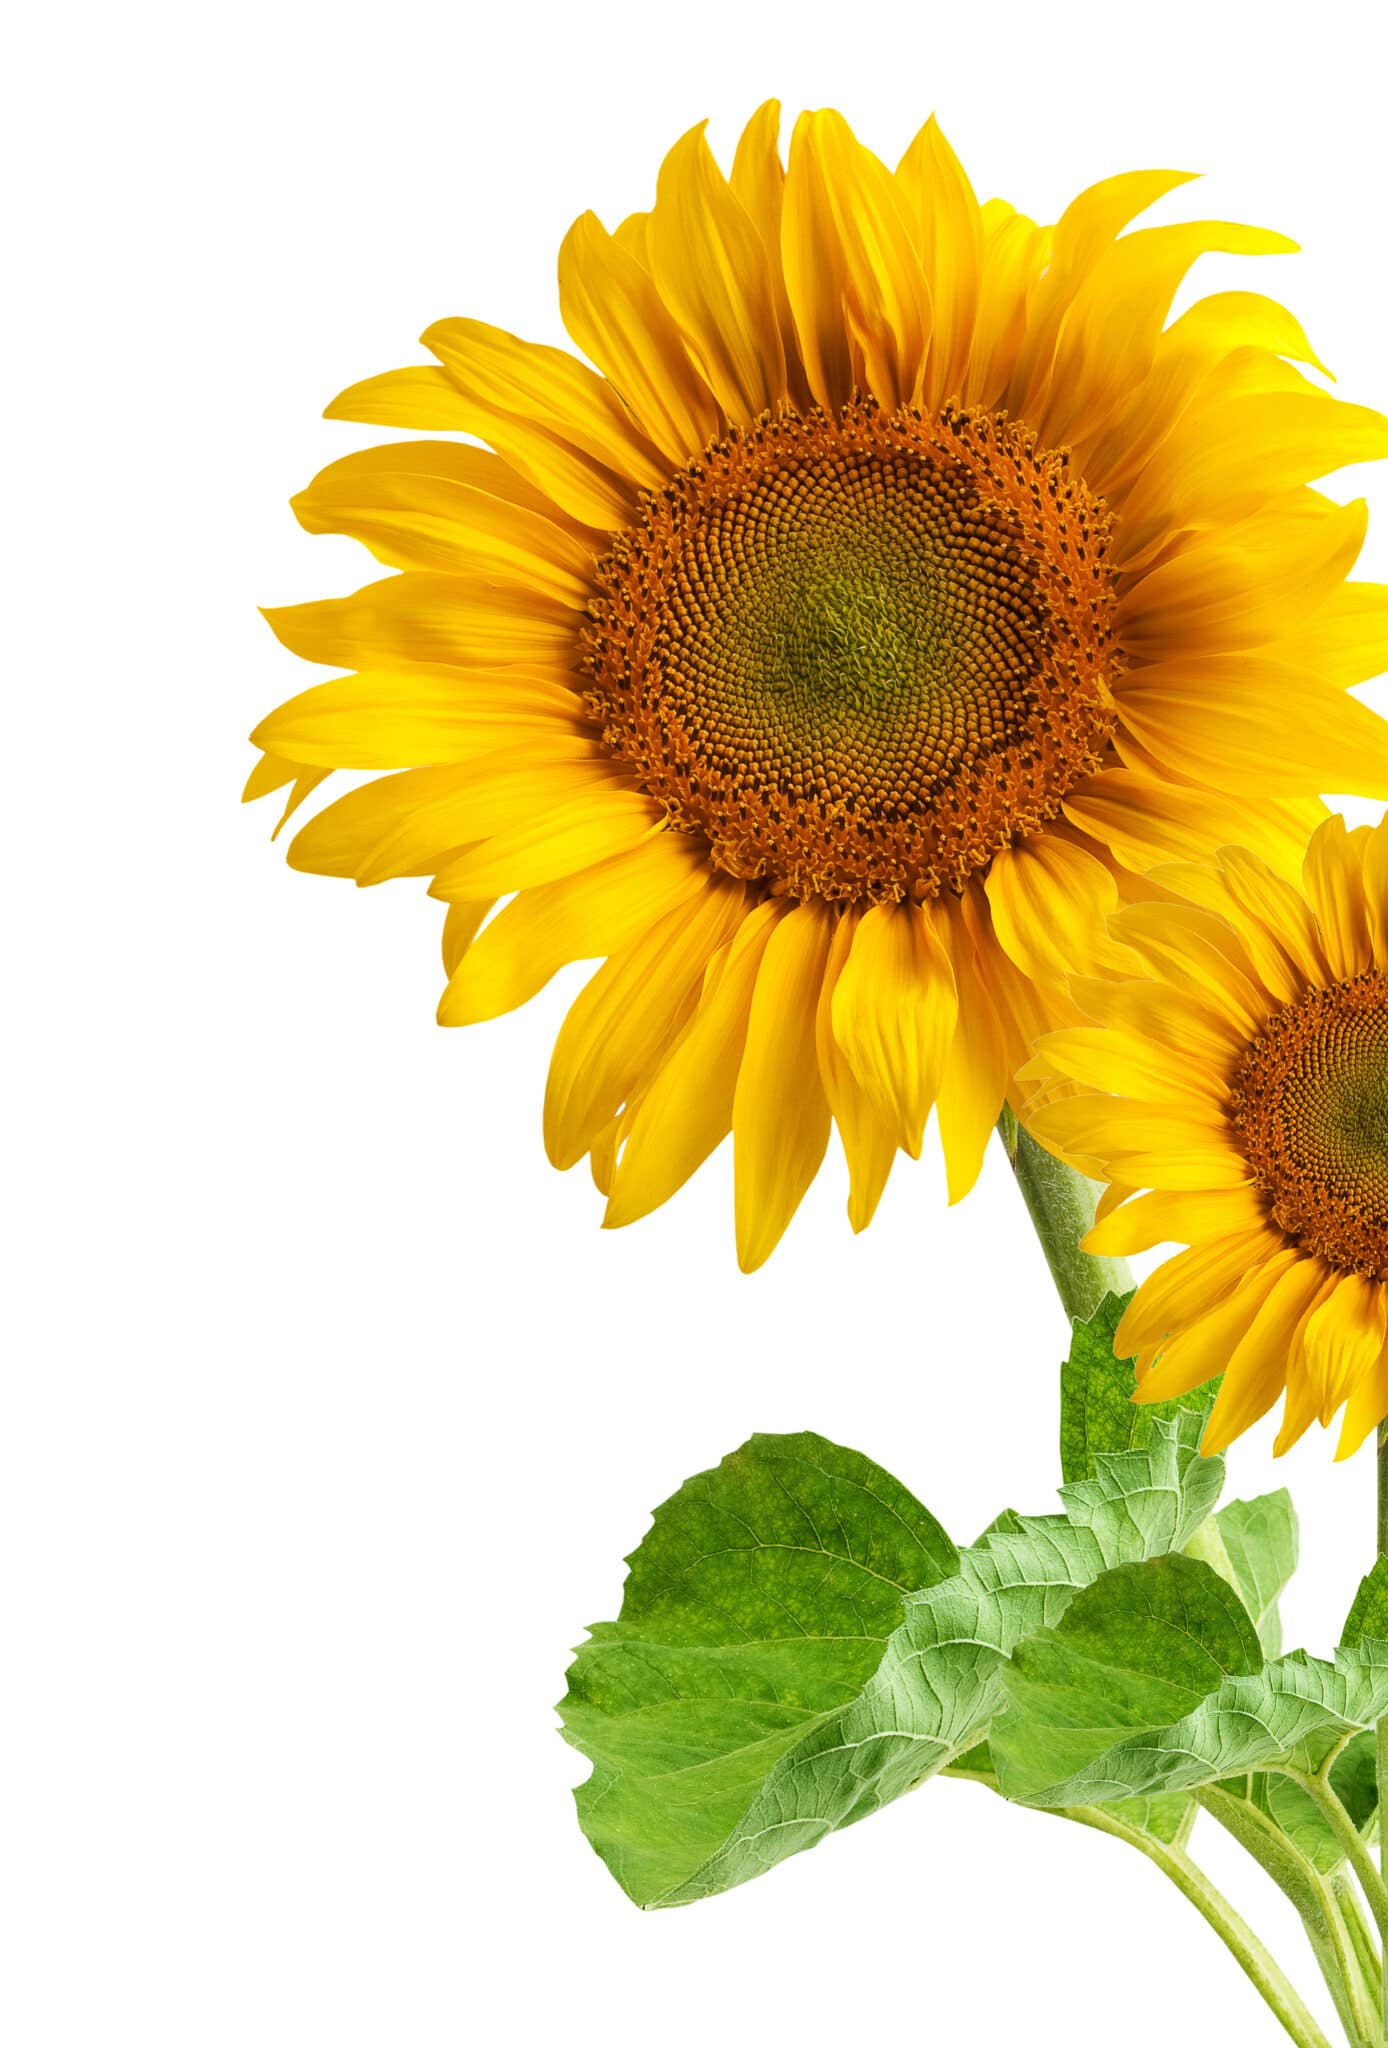 A bright yellow sunflower growing against a white background.